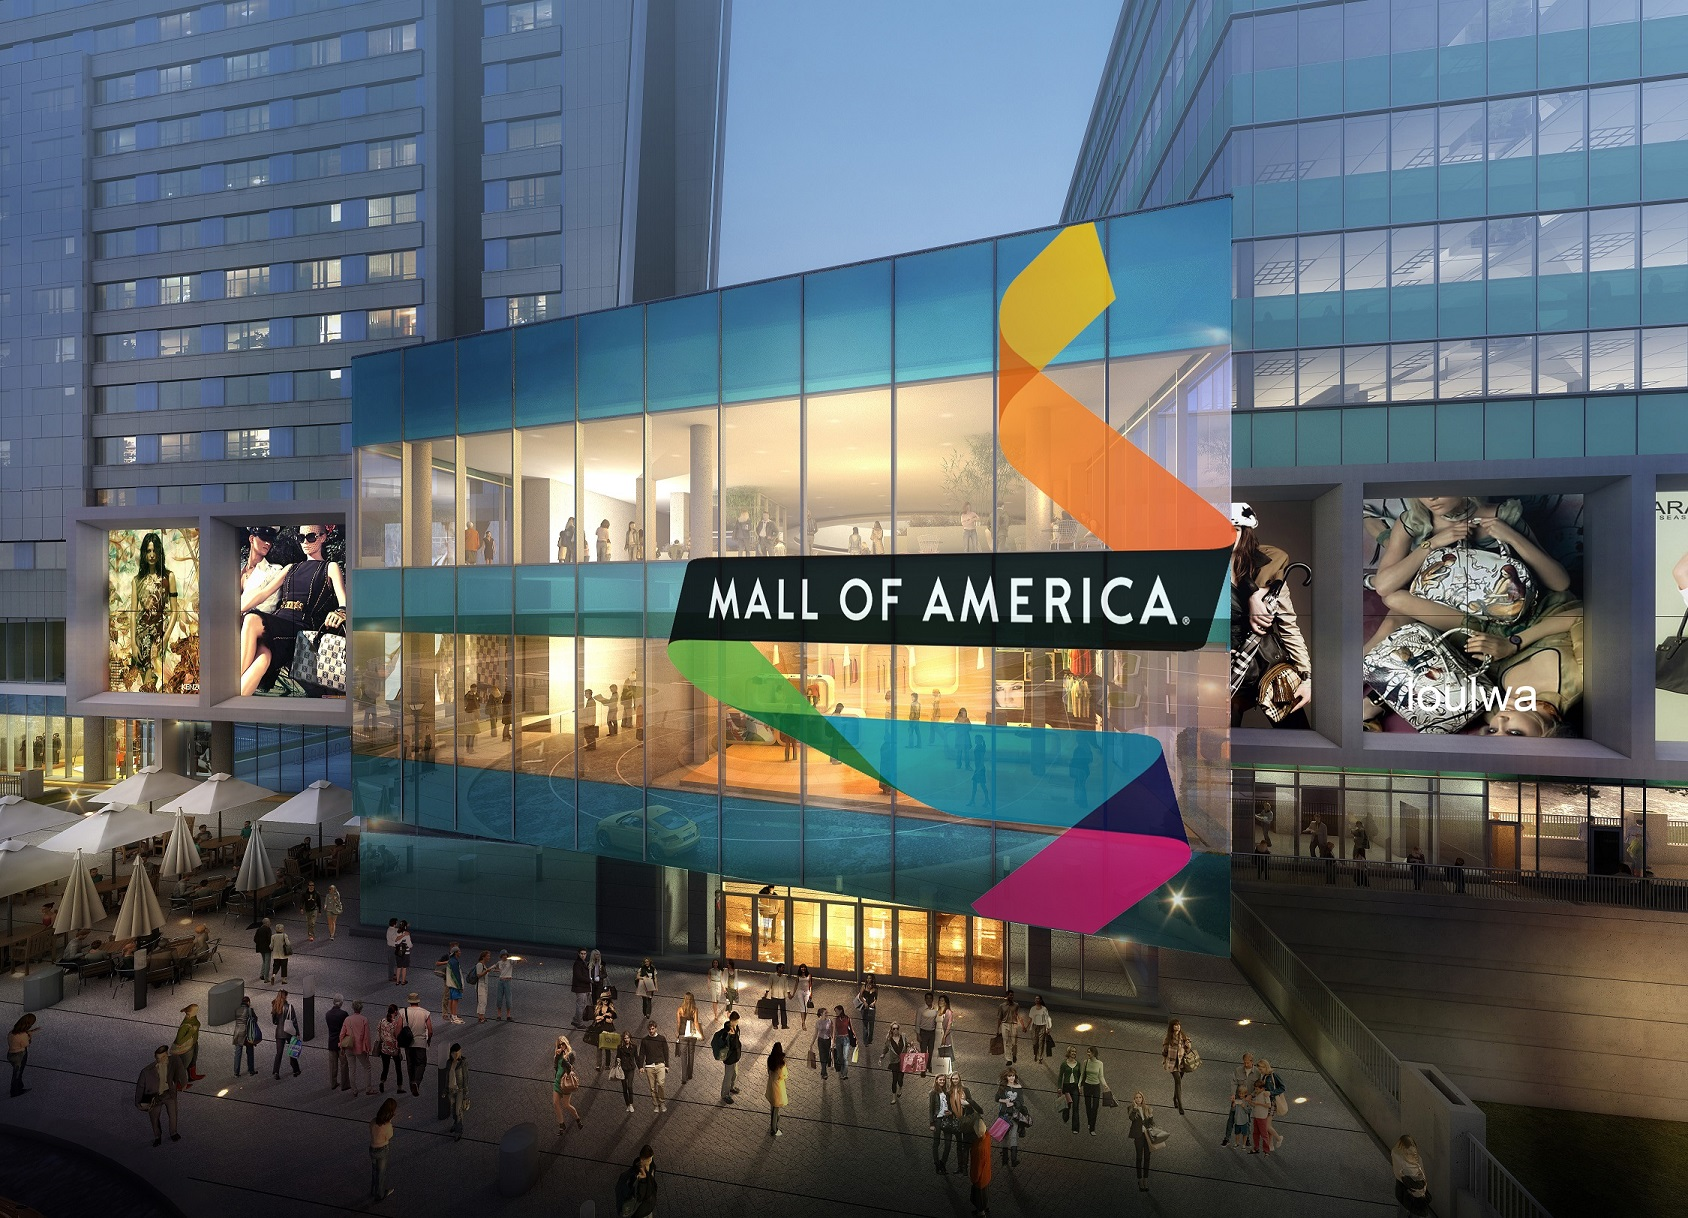 Mall America 2 The Project Includes Plans For Marriott Luxury Hotel An Underground Parking Area Which Will Include Valet Services And A Second Atrium